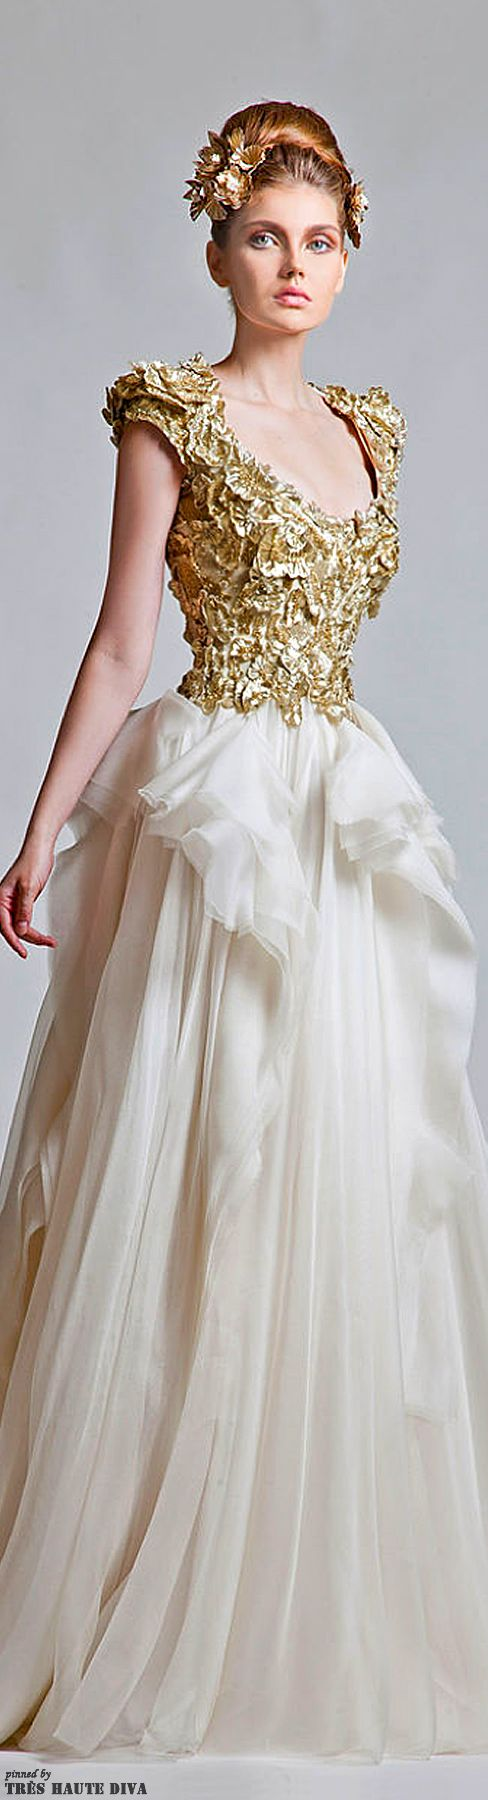 Krikor Jabotian Couture 2013 ~ textured, cap-sleeve, gold bodice with a delicate, asymettrically, 'half'-poofy skirt!  Love!!!